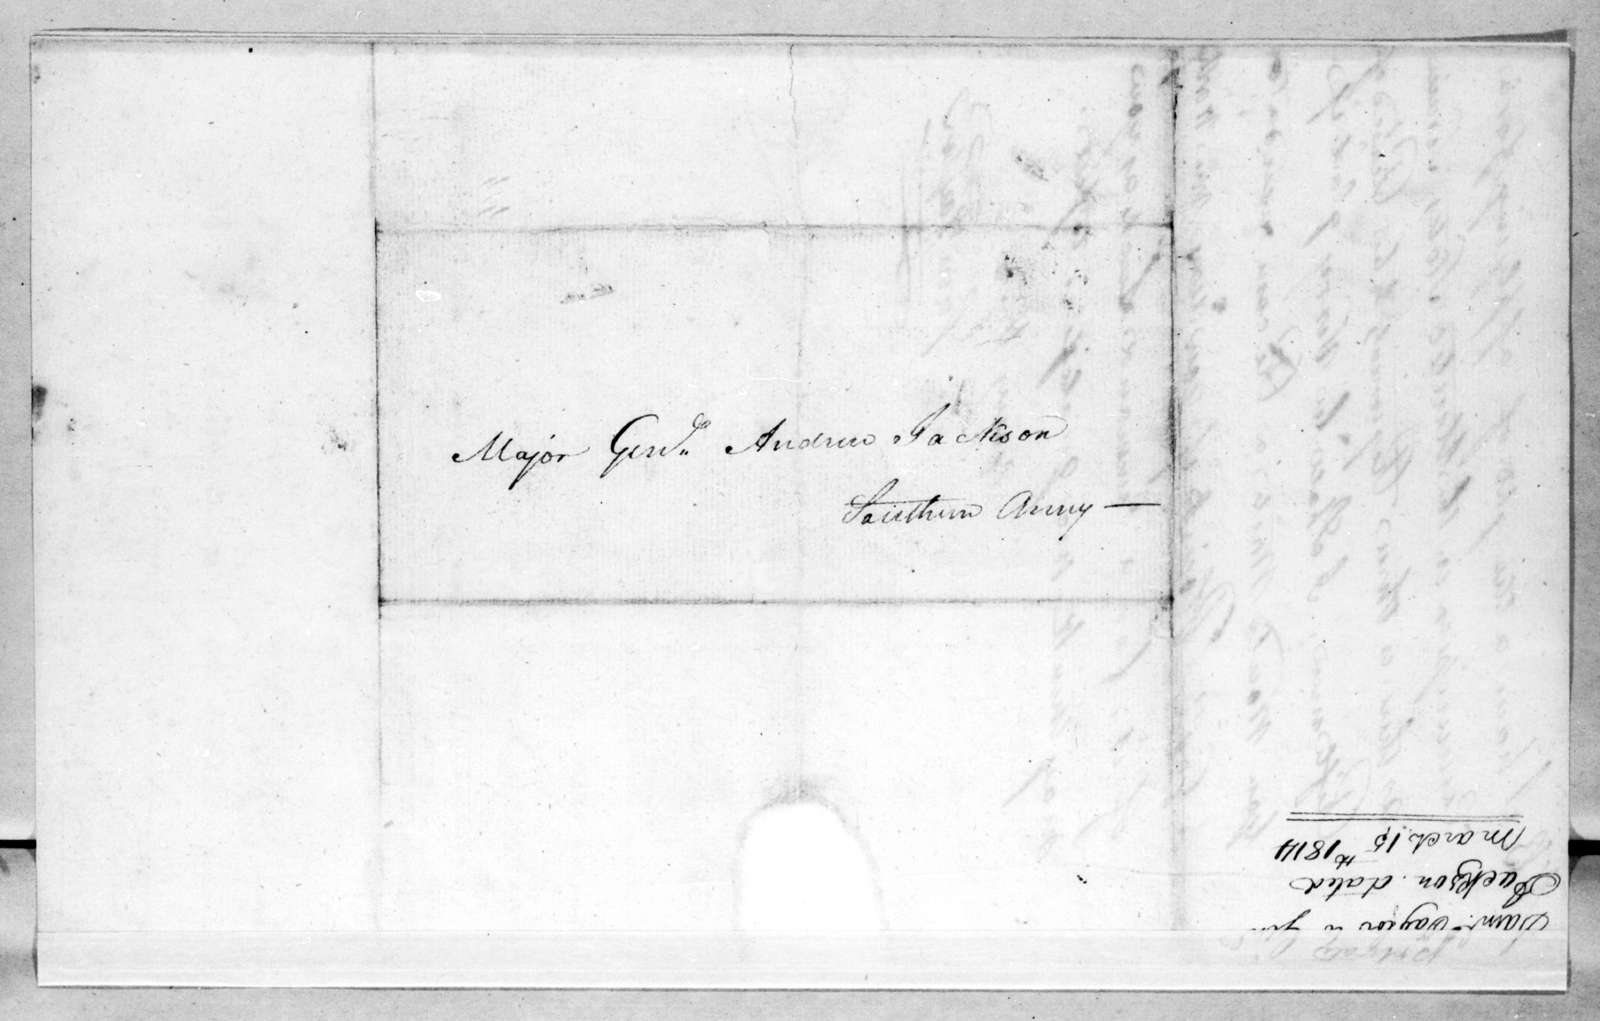 Samuel Taylor to Andrew Jackson, March 15, 1814